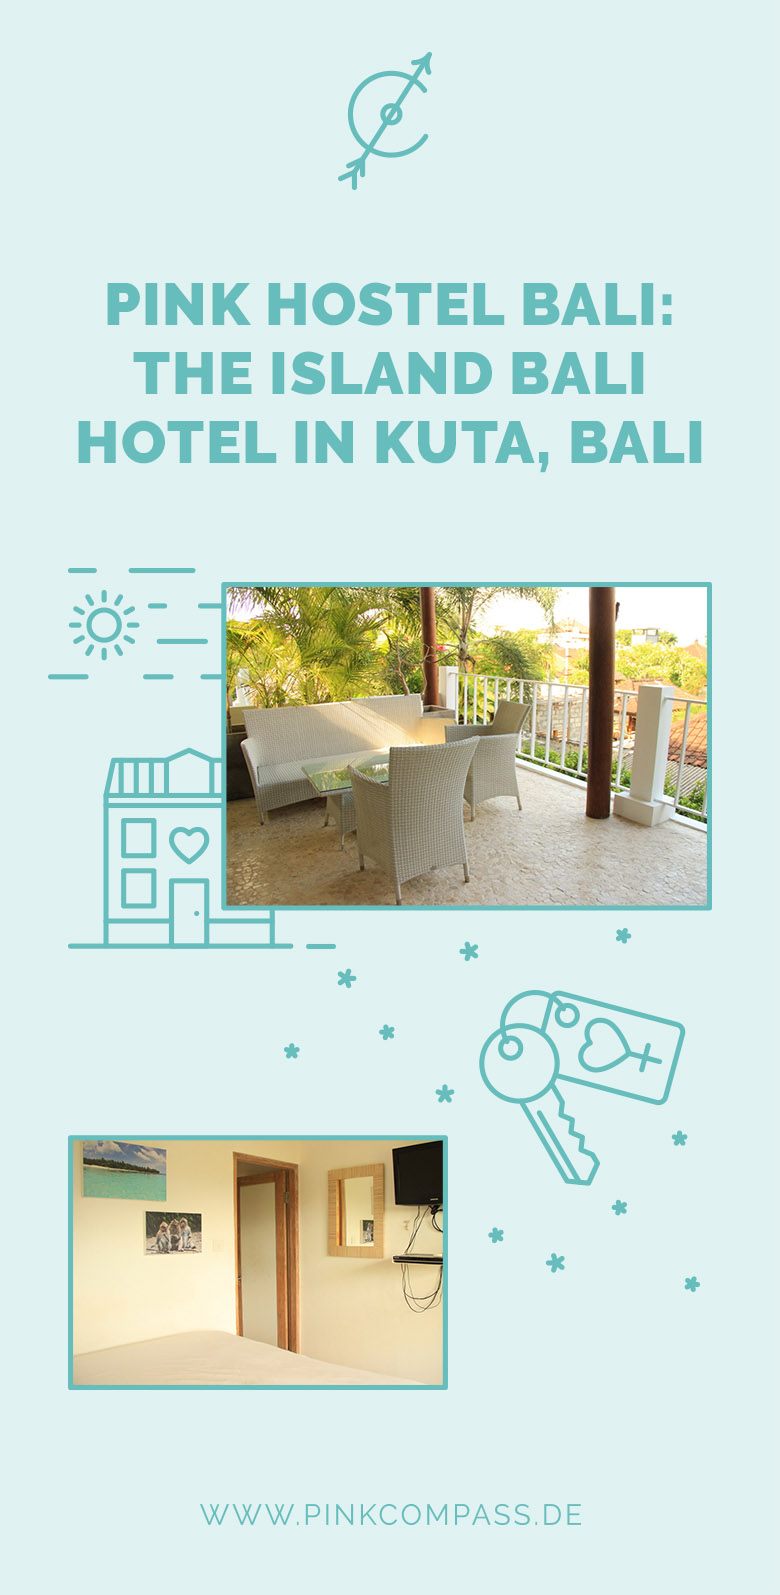 Hostel in Bali: The Island Bali Hotel in Kuta (Pink Hostel)